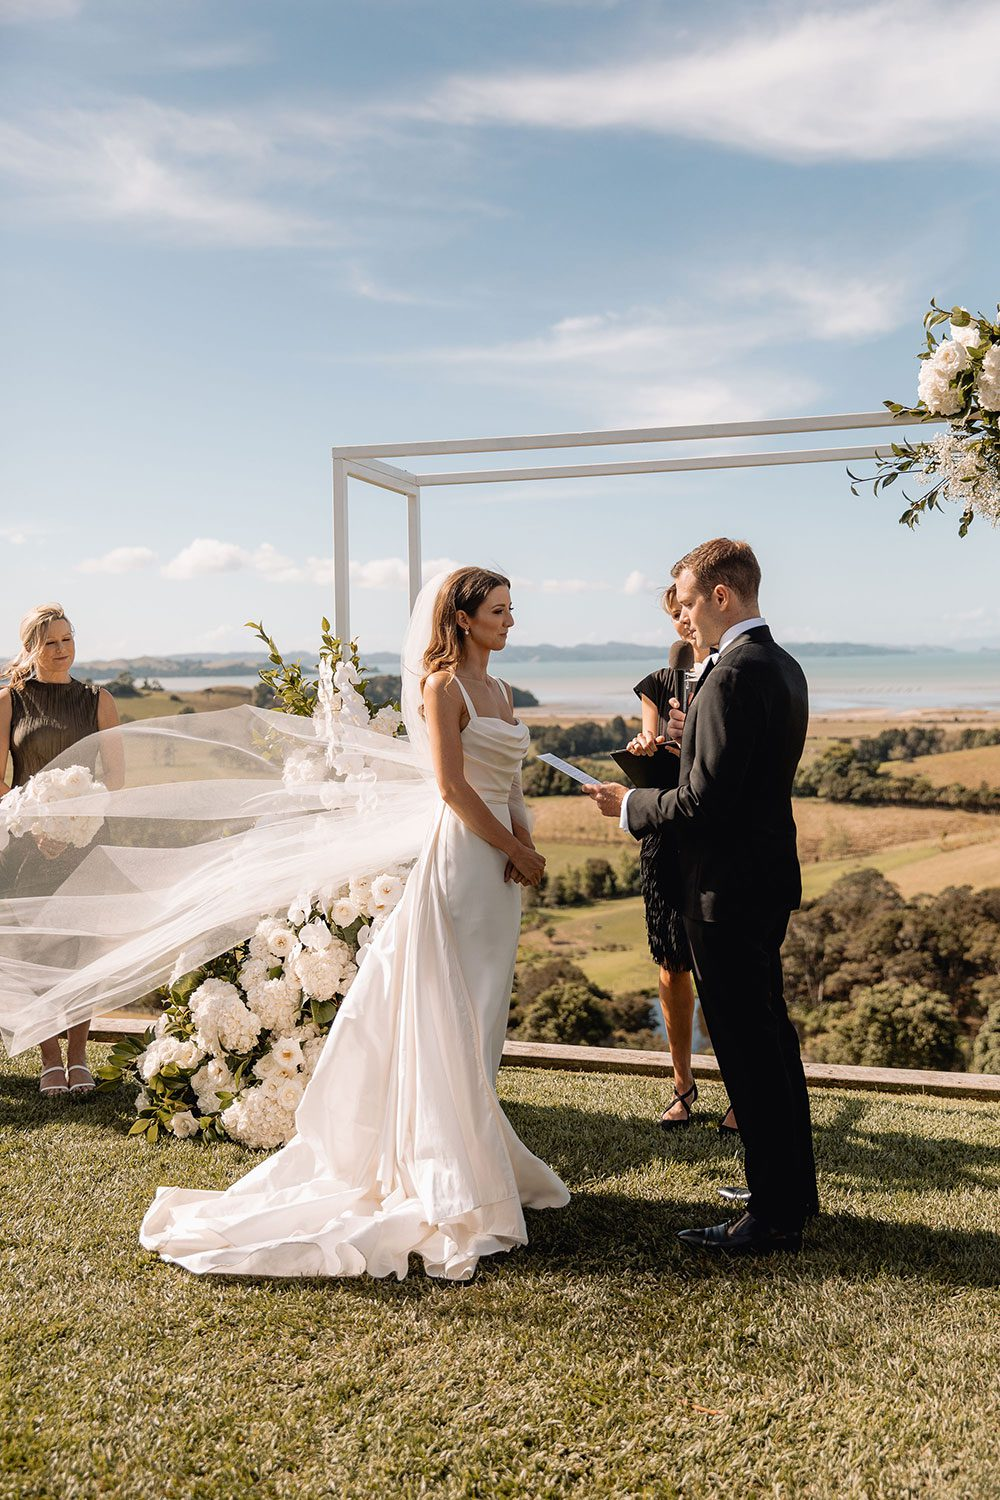 Bride wearing NZ Bespoke Bridal Gown made of silk faile with cowl bodice and detachable overskirt by Vinka Designs - veil in wind at alter